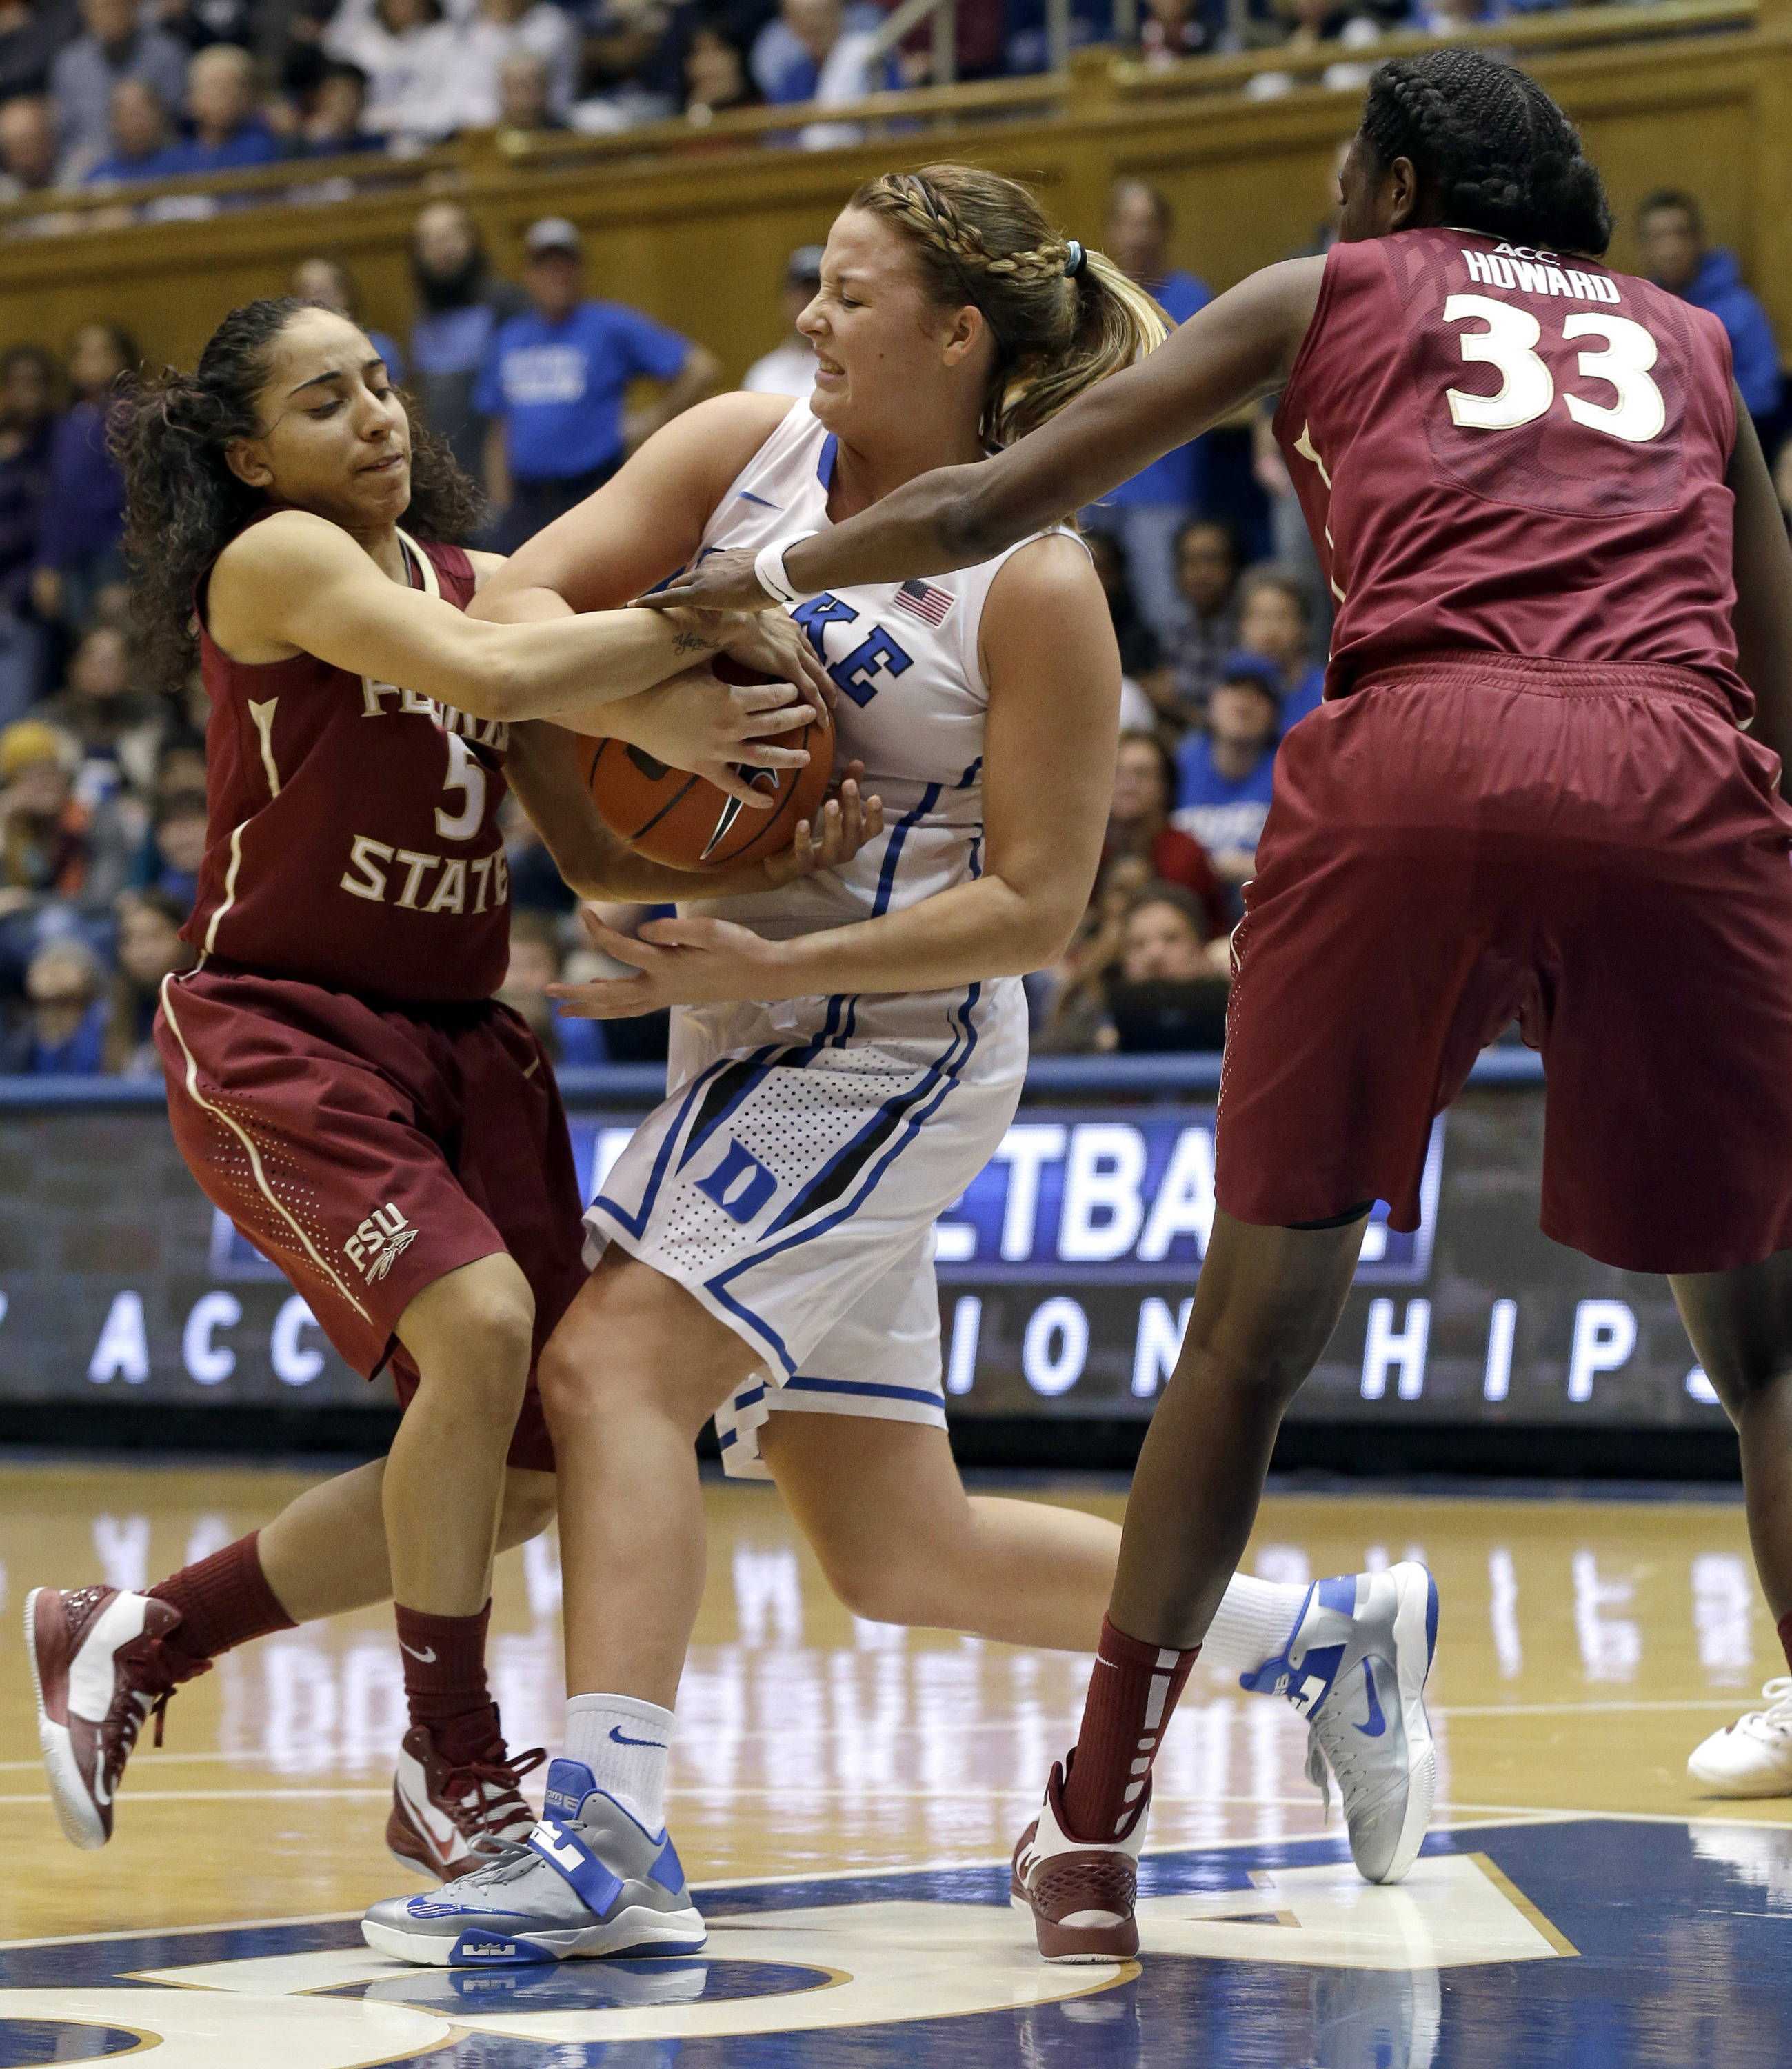 Duke's Tricia Liston, center, struggles for possession of the ball with Florida State's Yashira Delgado (5) and Natasha Howard (33). (AP Photo/Gerry Broome)